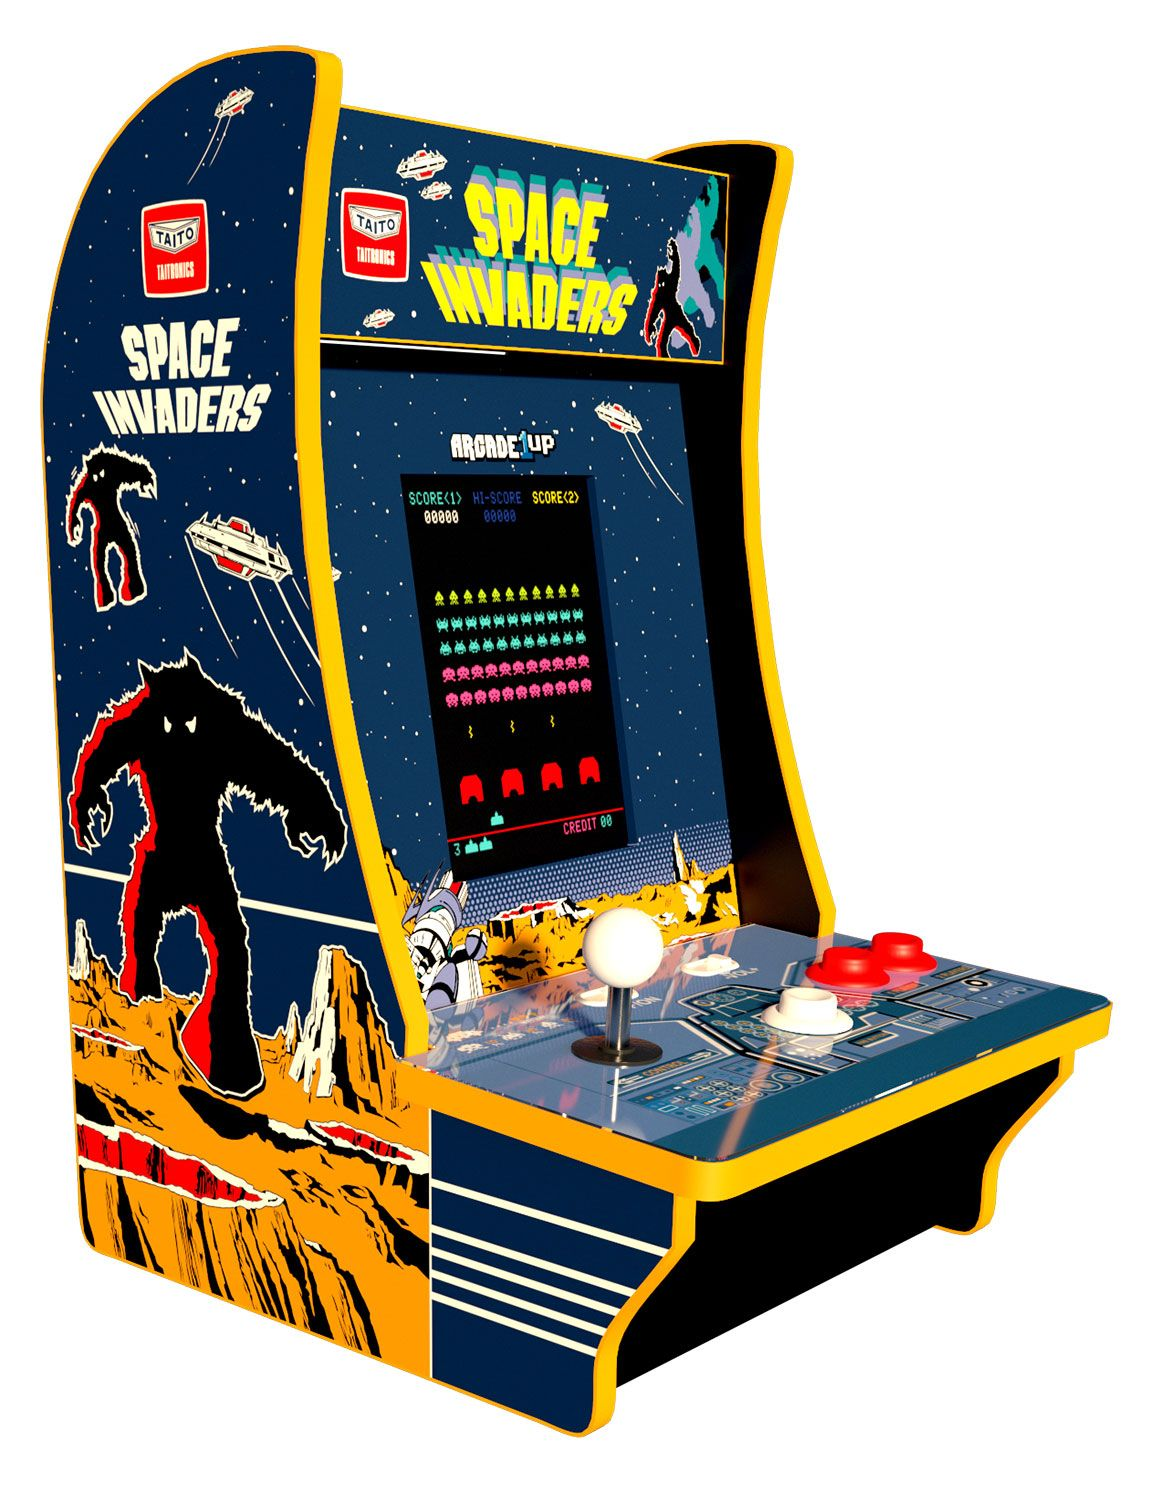 Arcade1Up Space Invaders Countercade Machine